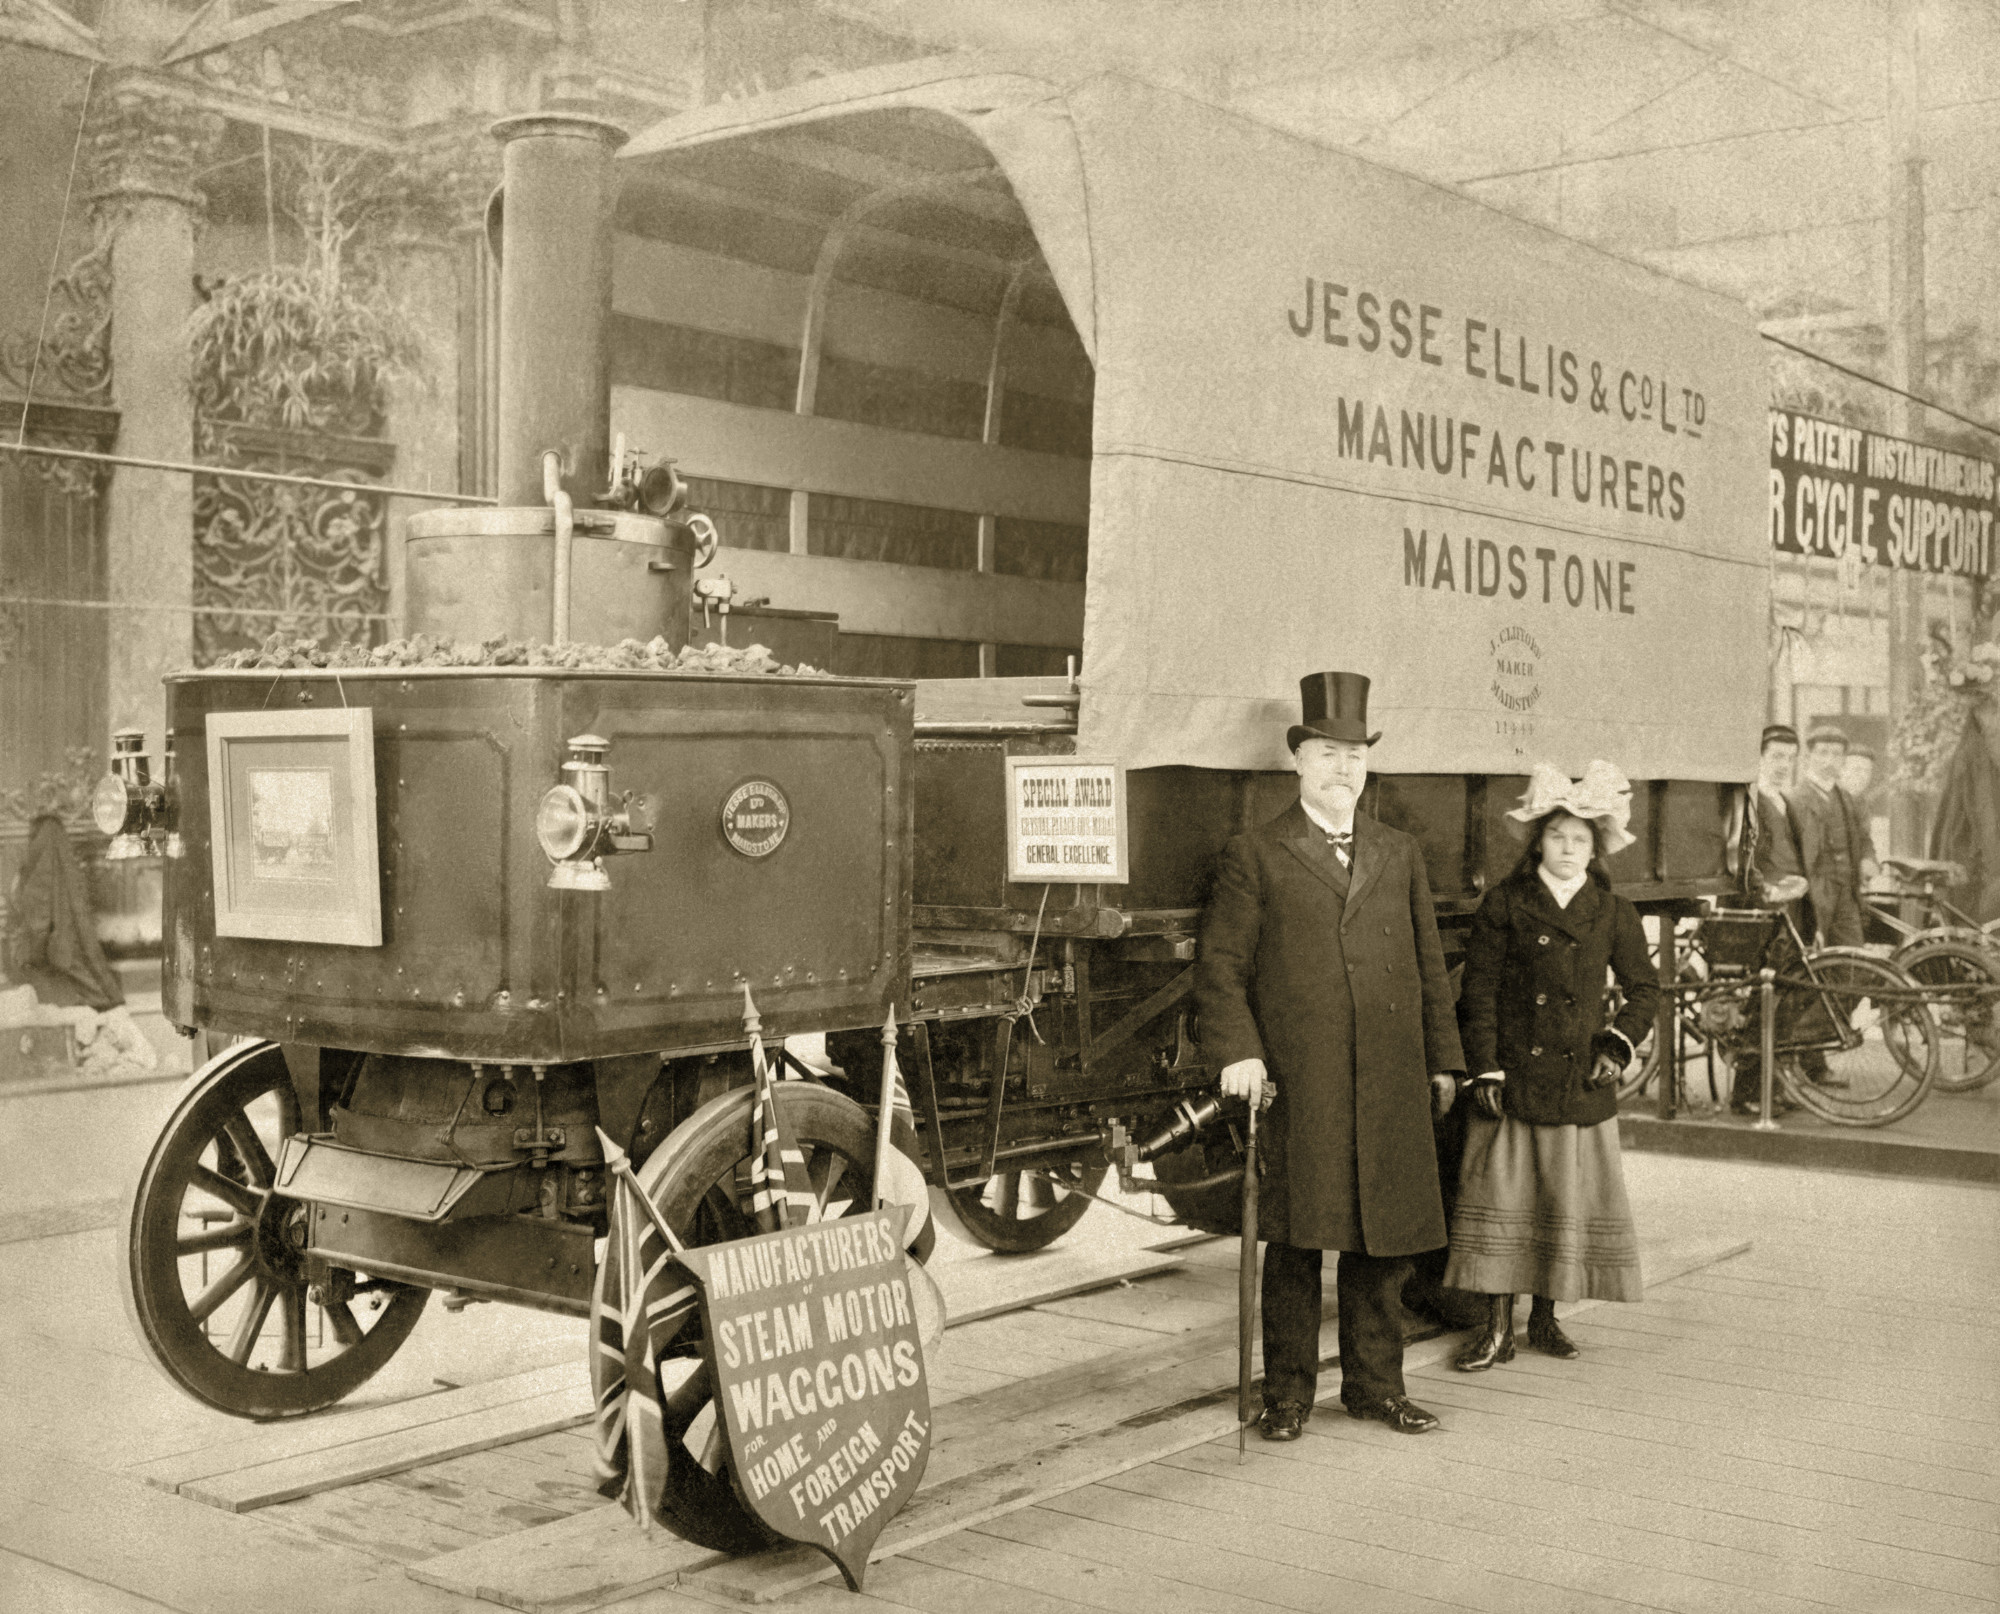 Jesse Ellis Wagons of Maidstone